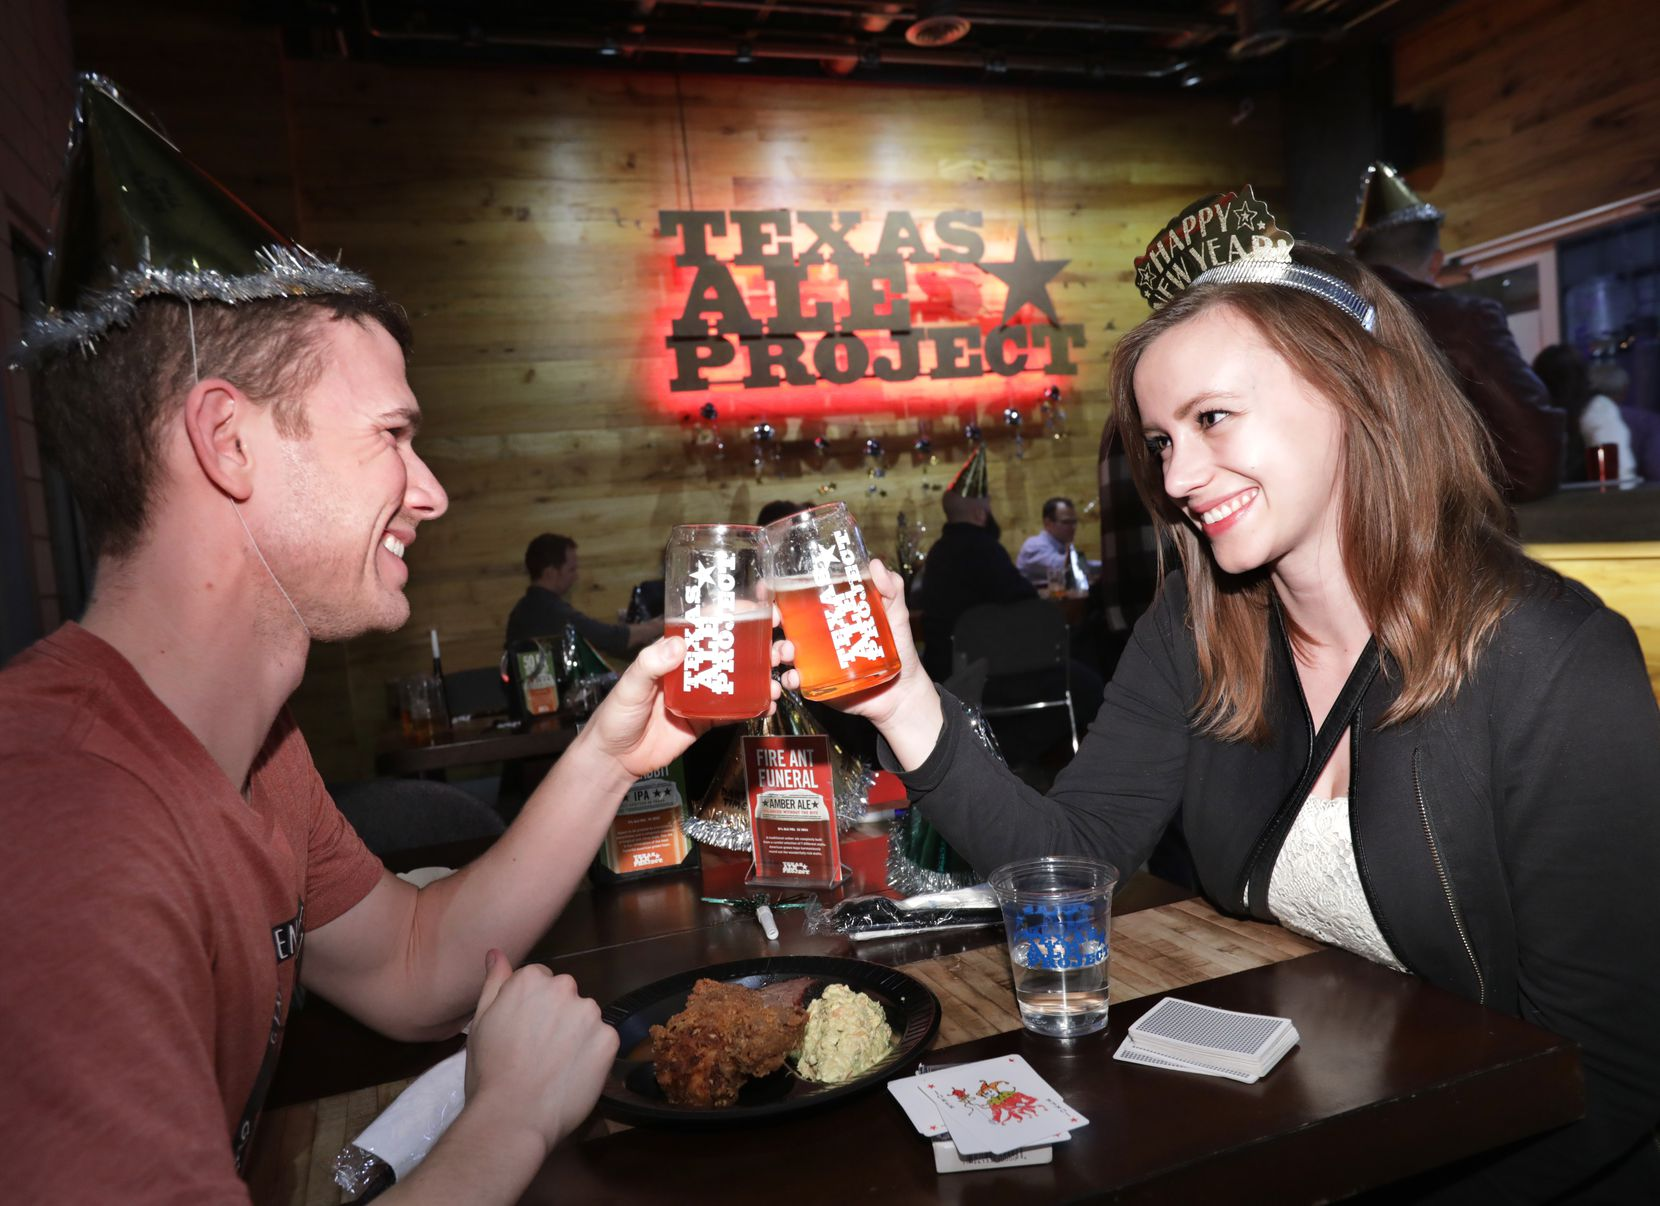 Toast the new year at the Hops and Boots party at Texas Ale Project, which will have a view of the Reunion Tower fireworks.